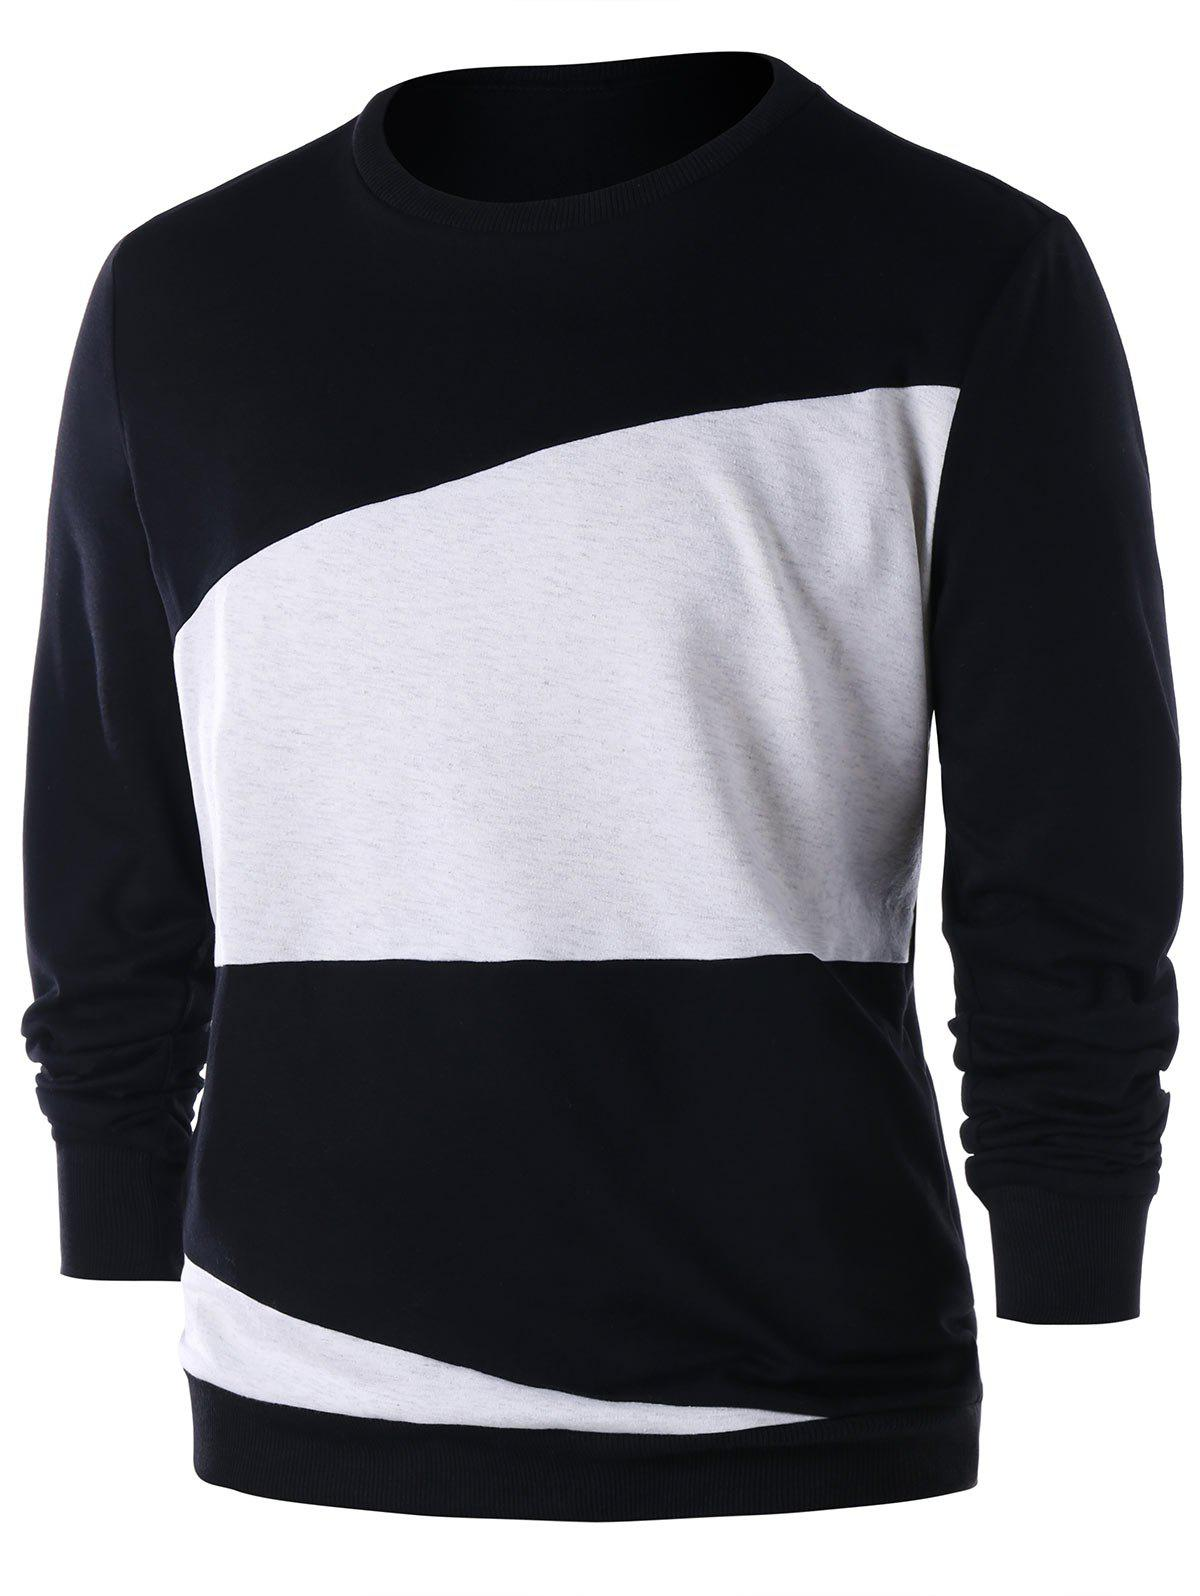 Two Tones Sweatshirt - BLACK L